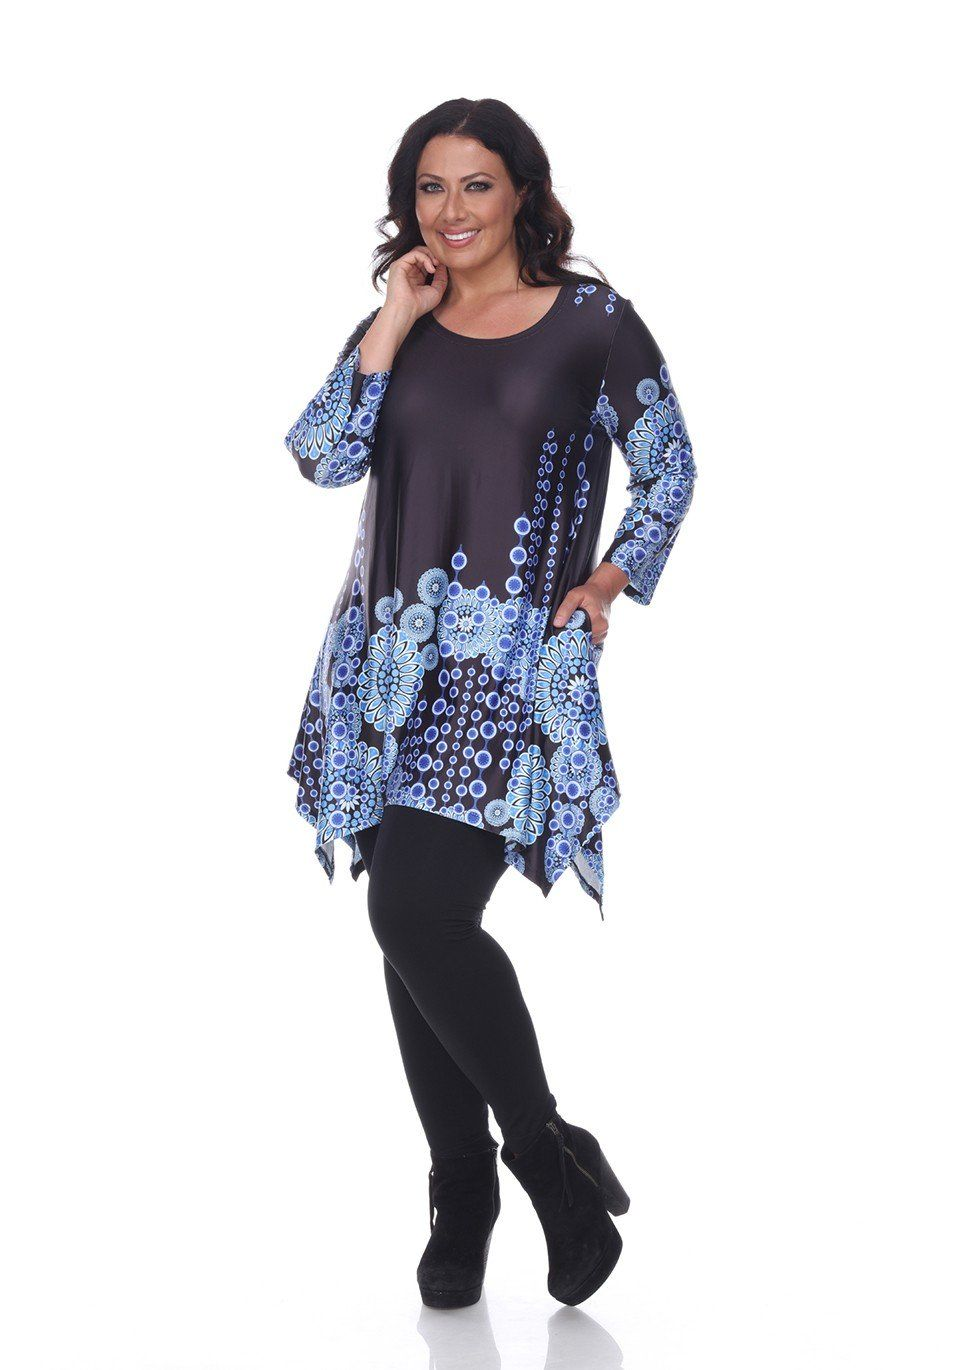 This flattering tunic from White Mark drapes stunningly on your body. With a bold, flirty print and 3/4 sleeves, you are sure to feel comfortable and look stylish. Size: 1X : US Size 14-16, Bust 40